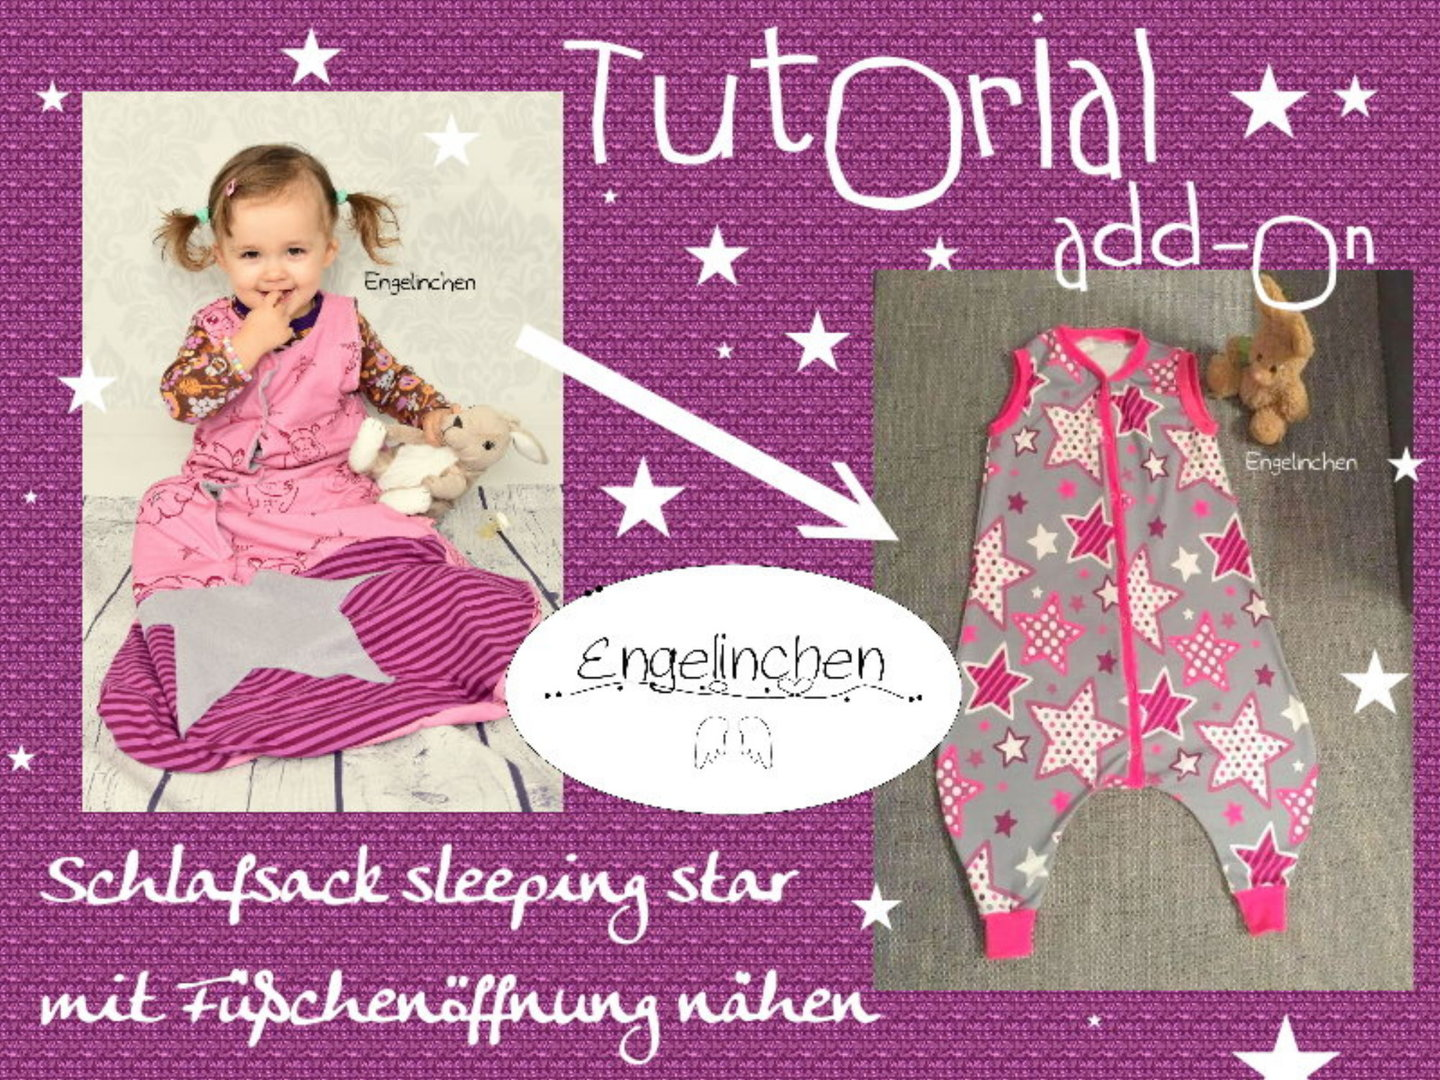 Tutorial add-on zum Schlafsack sleeping star: Fußöffnungen